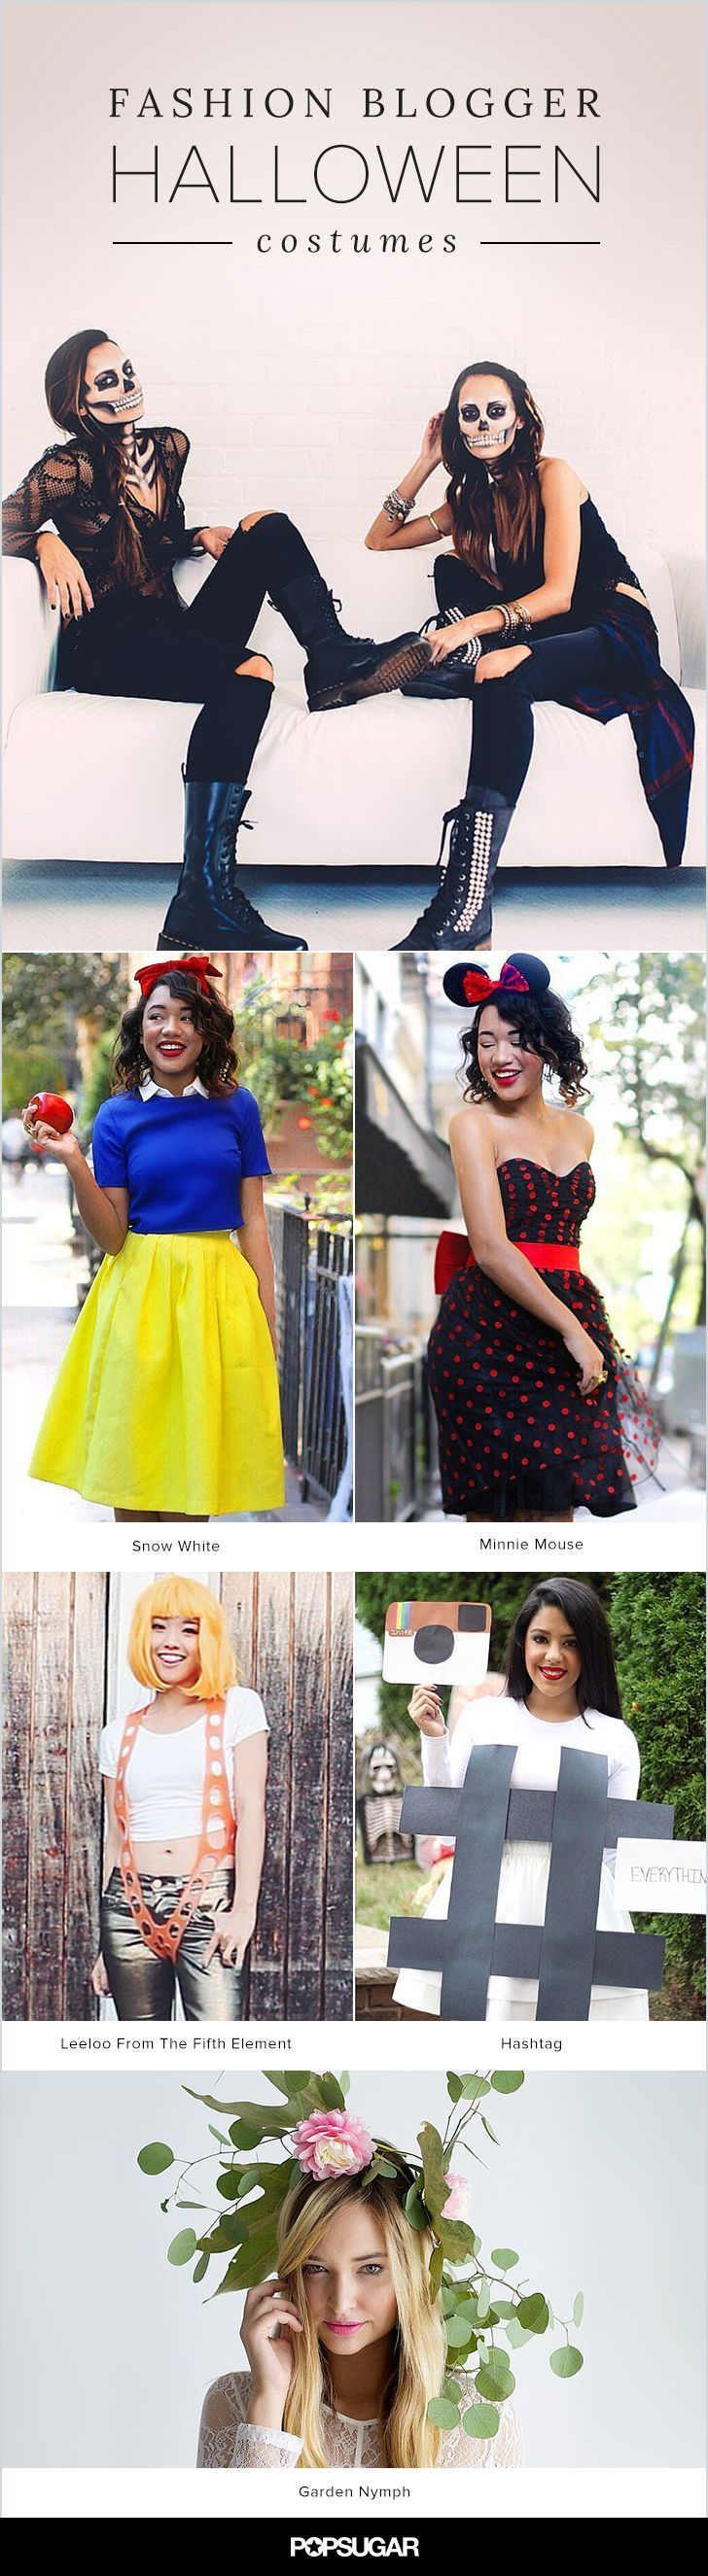 249 best costumes images on Pinterest